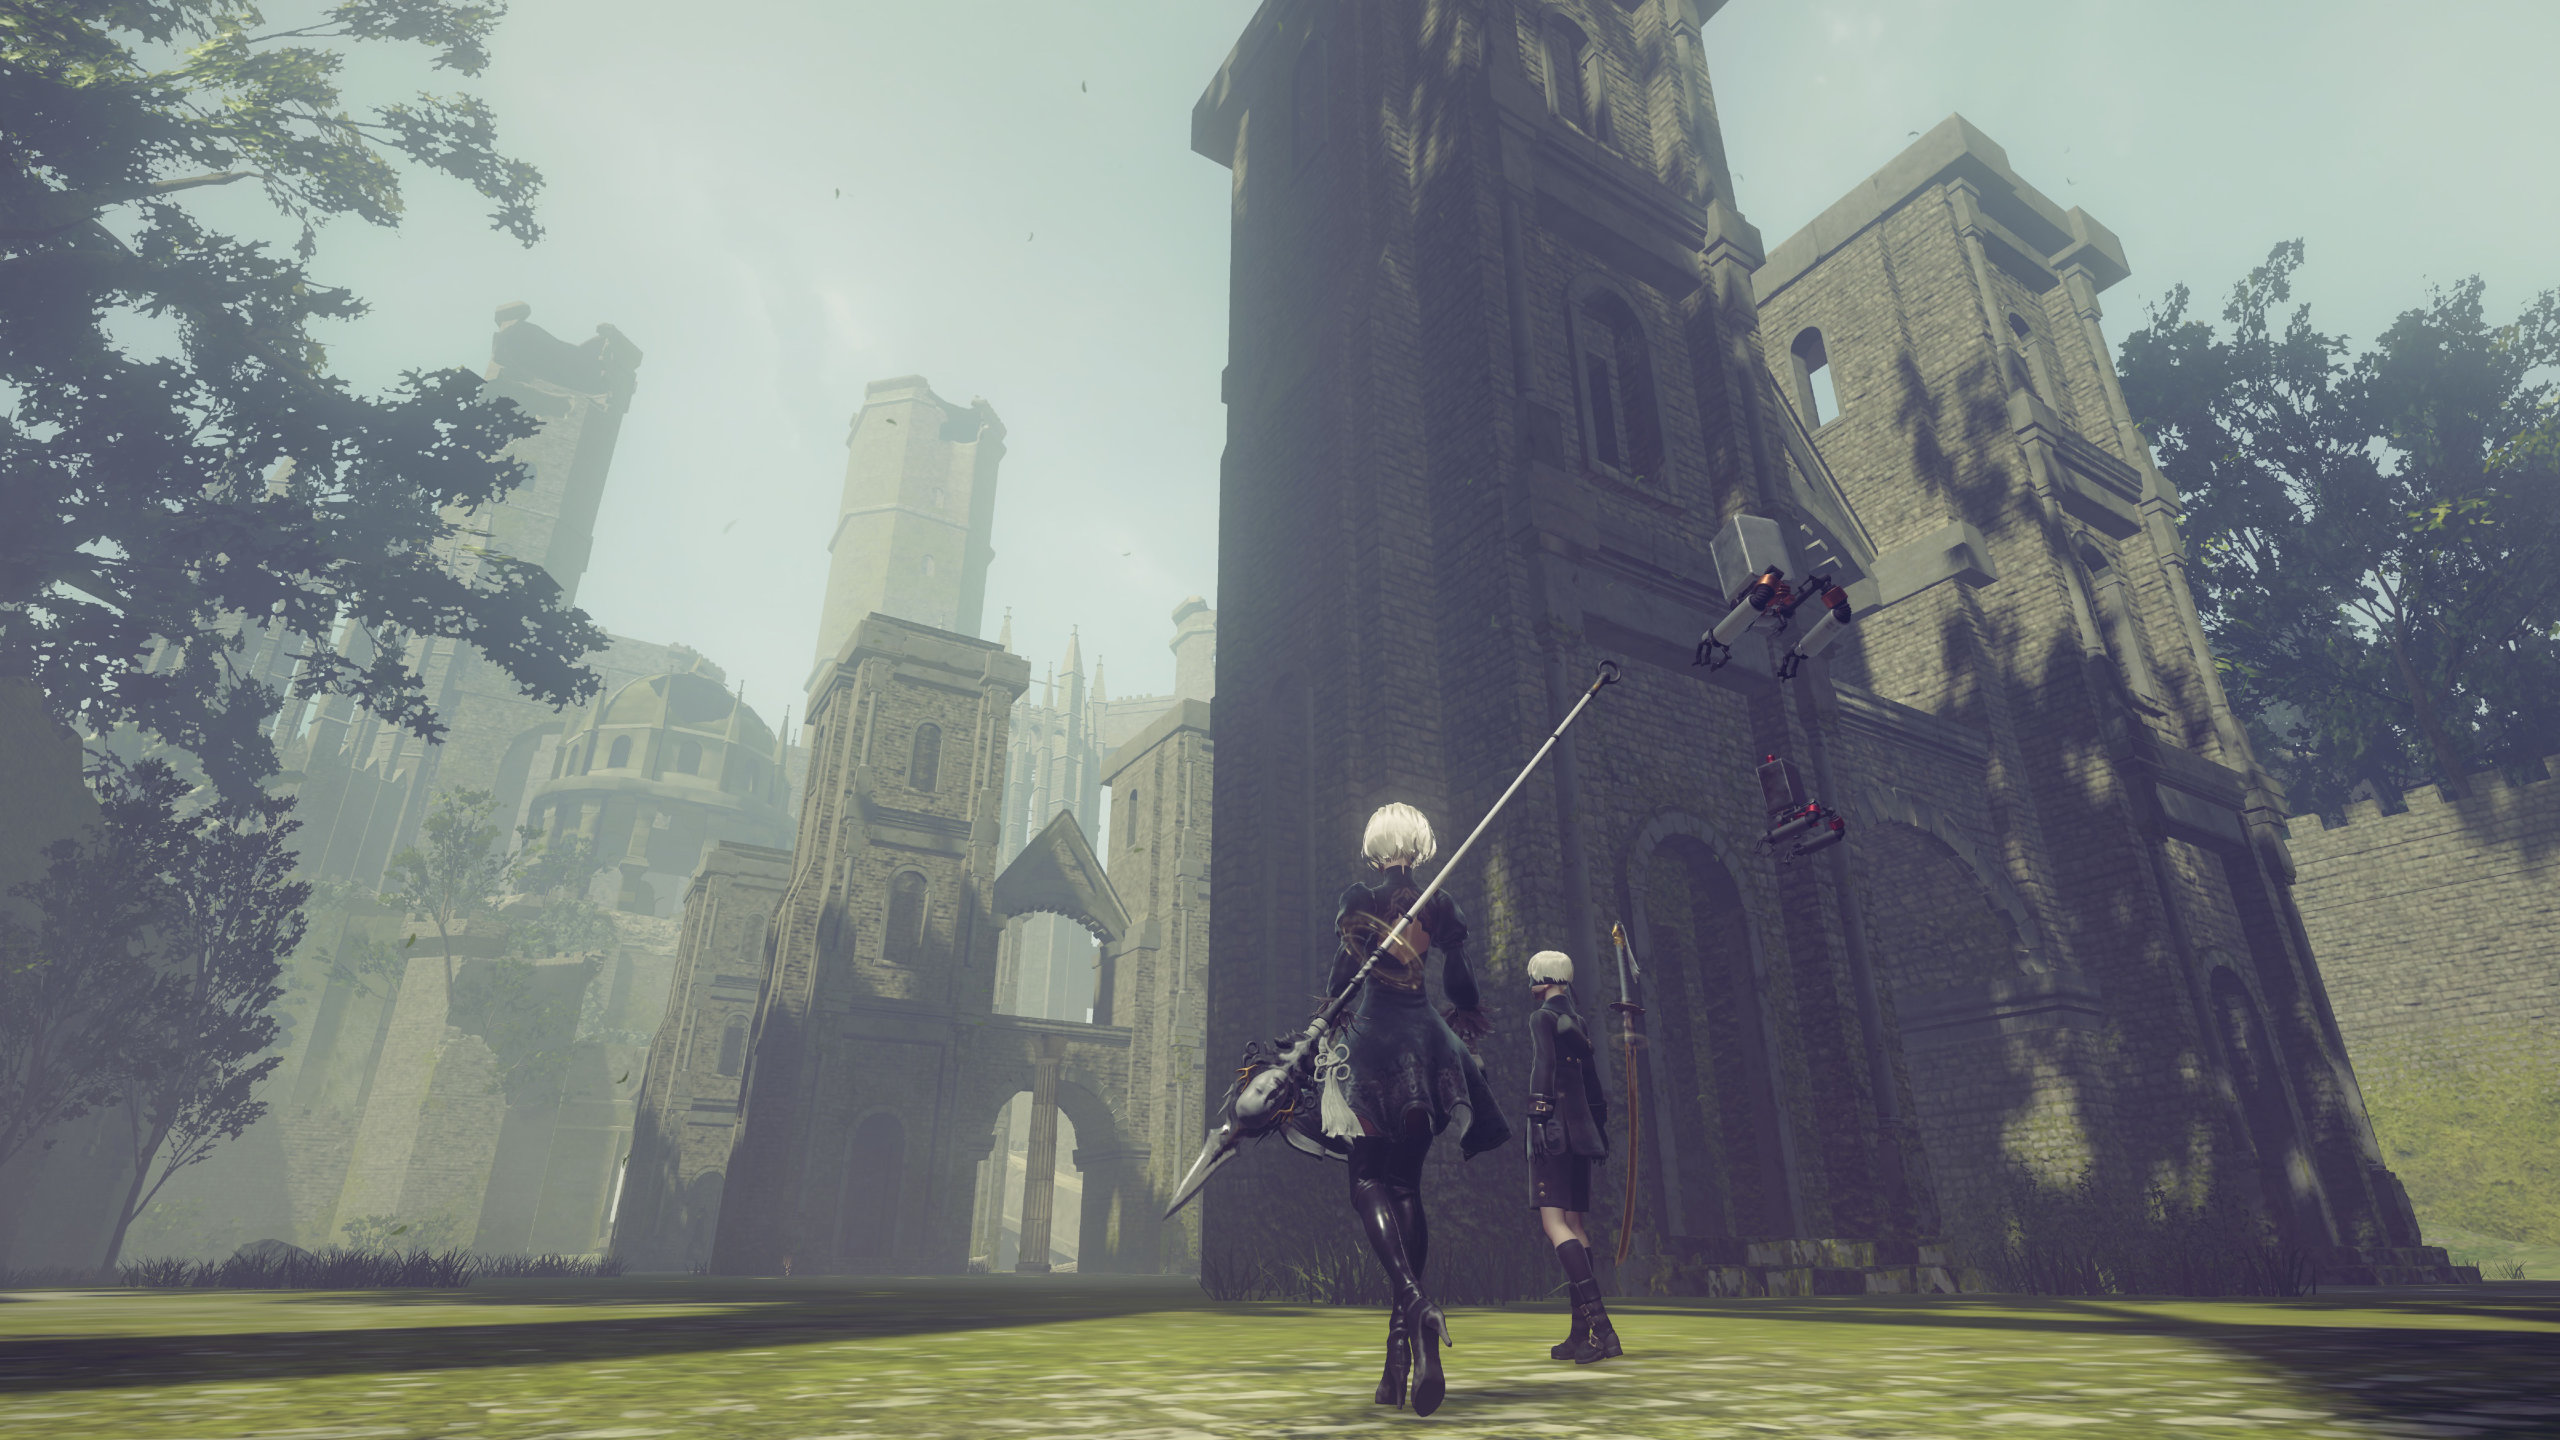 NieR: Automata screenshot of 2B and 9S in the foggy ruins of an abandoned forest castle.